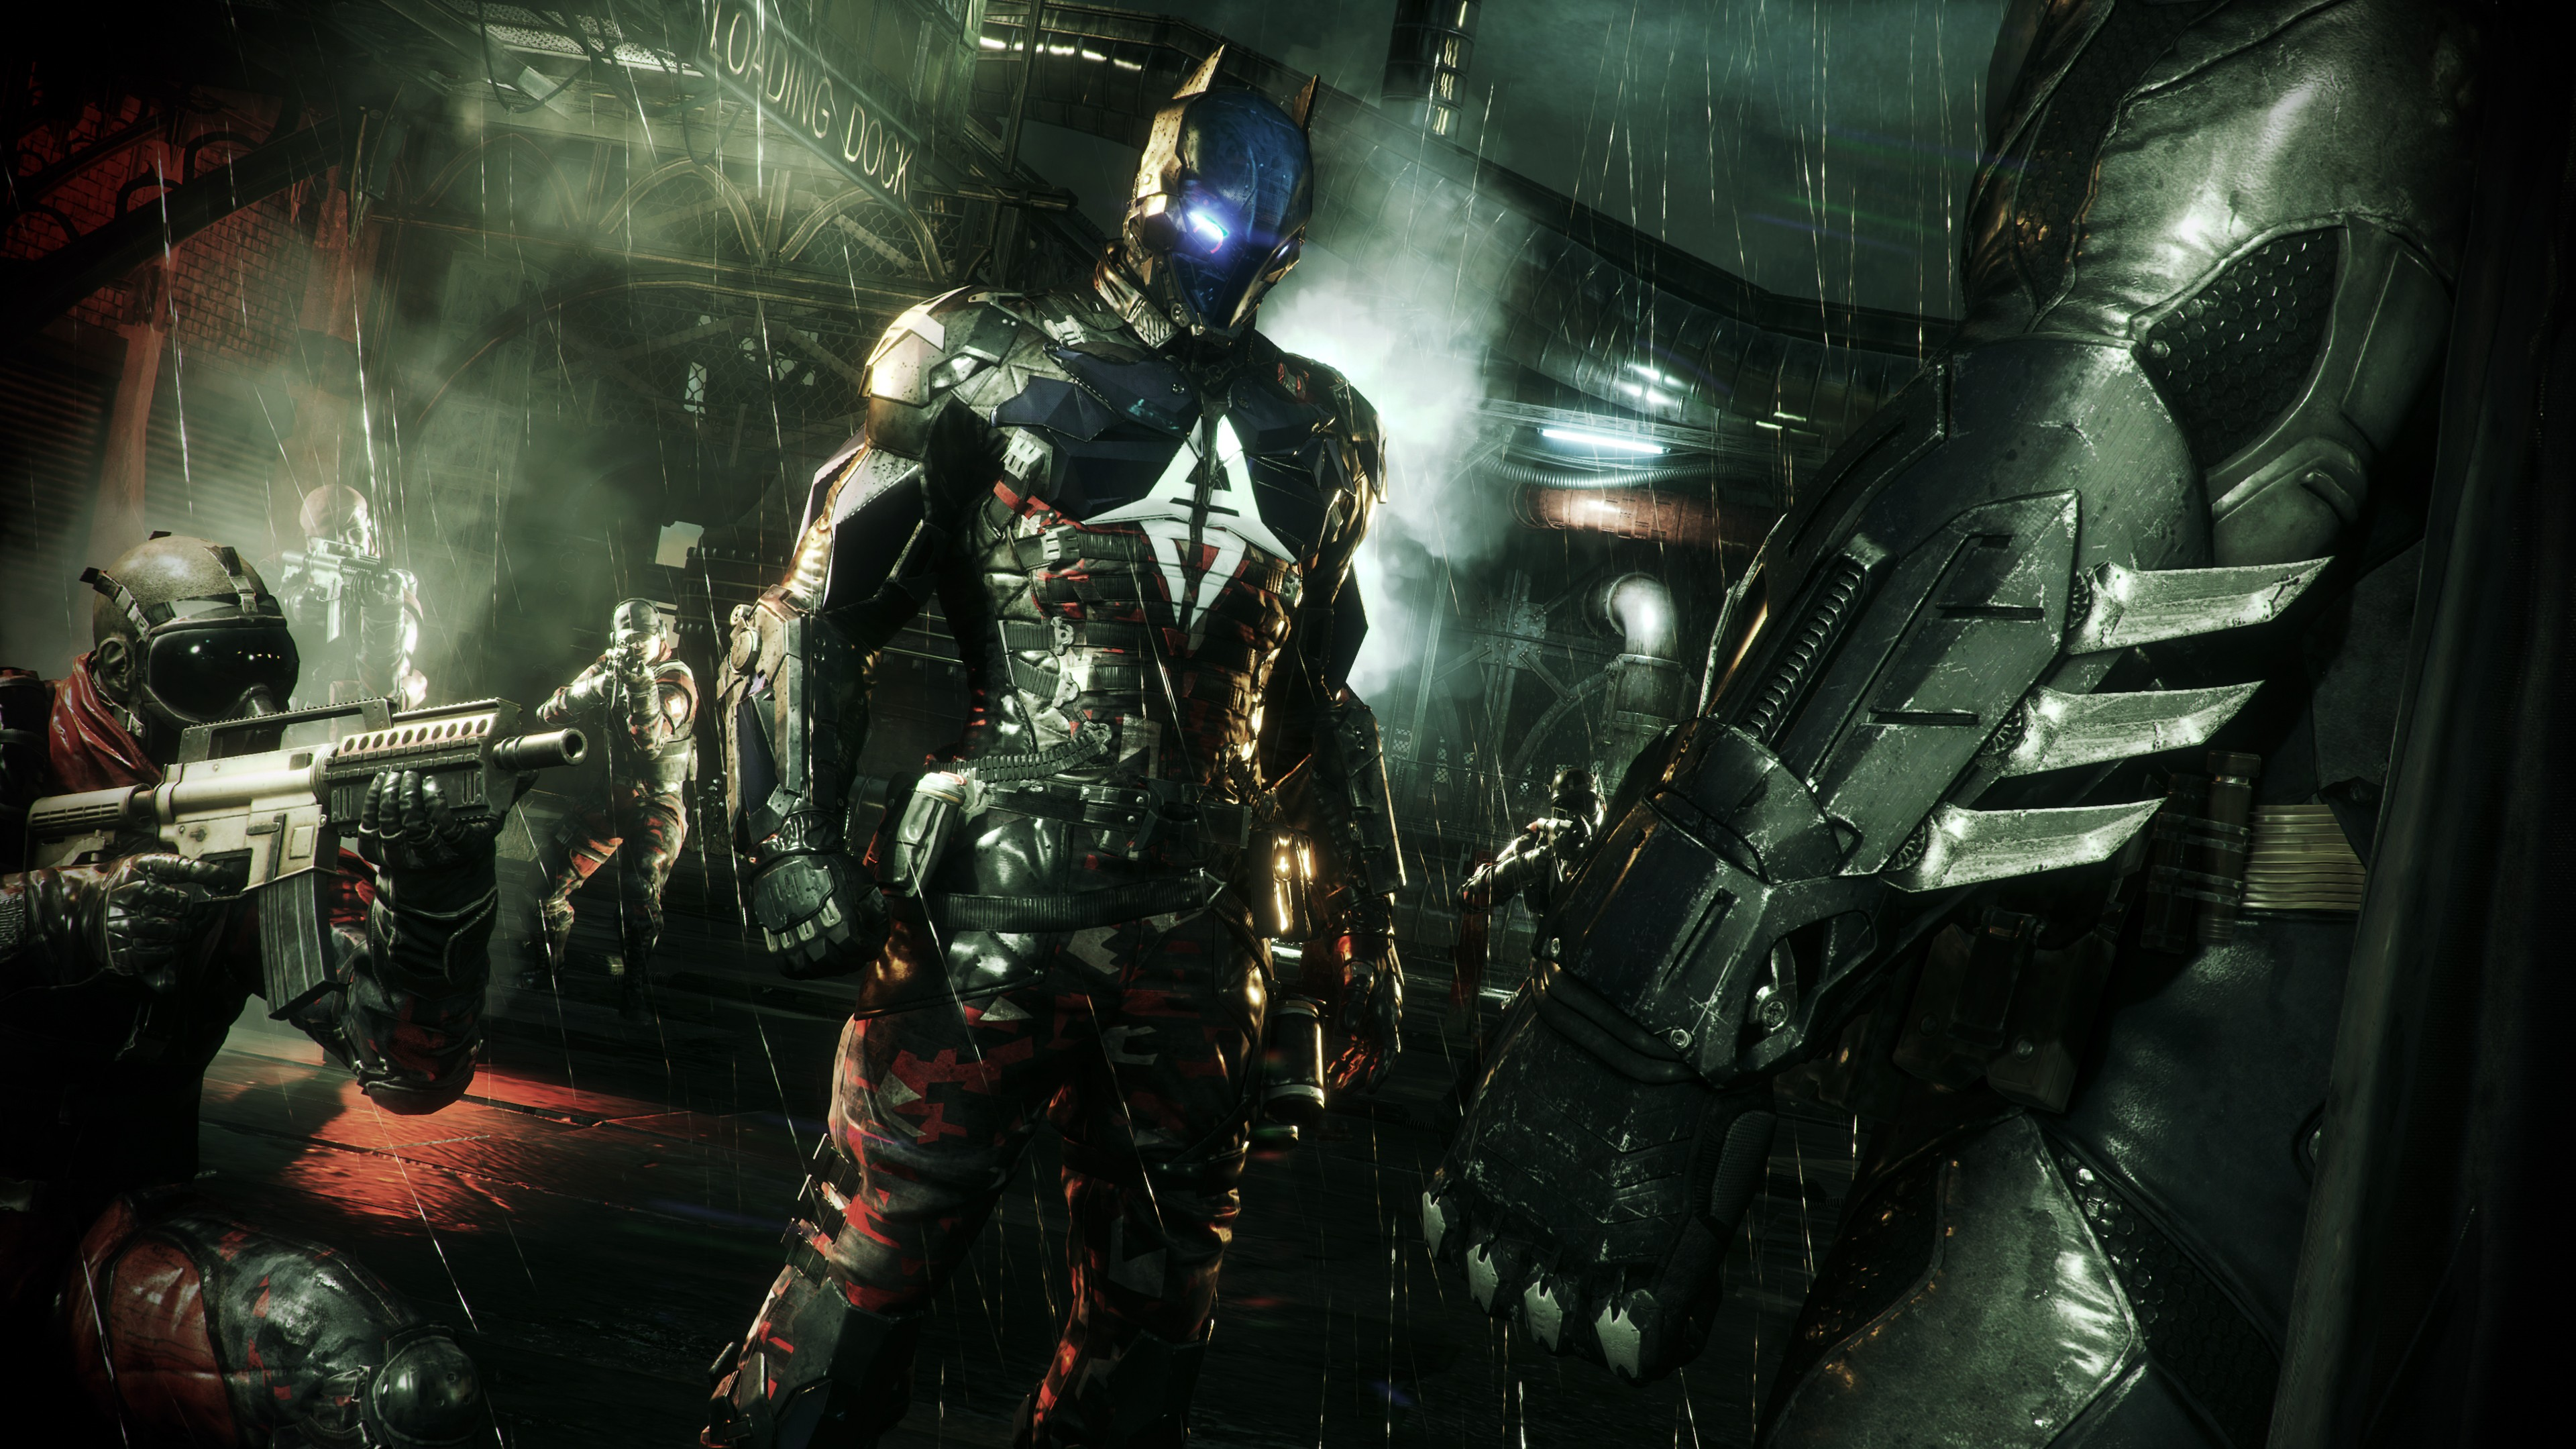 Batman Enemy Arkham Knight Wallpaper HD 3006 Wallpaper Download HD 3840x2160